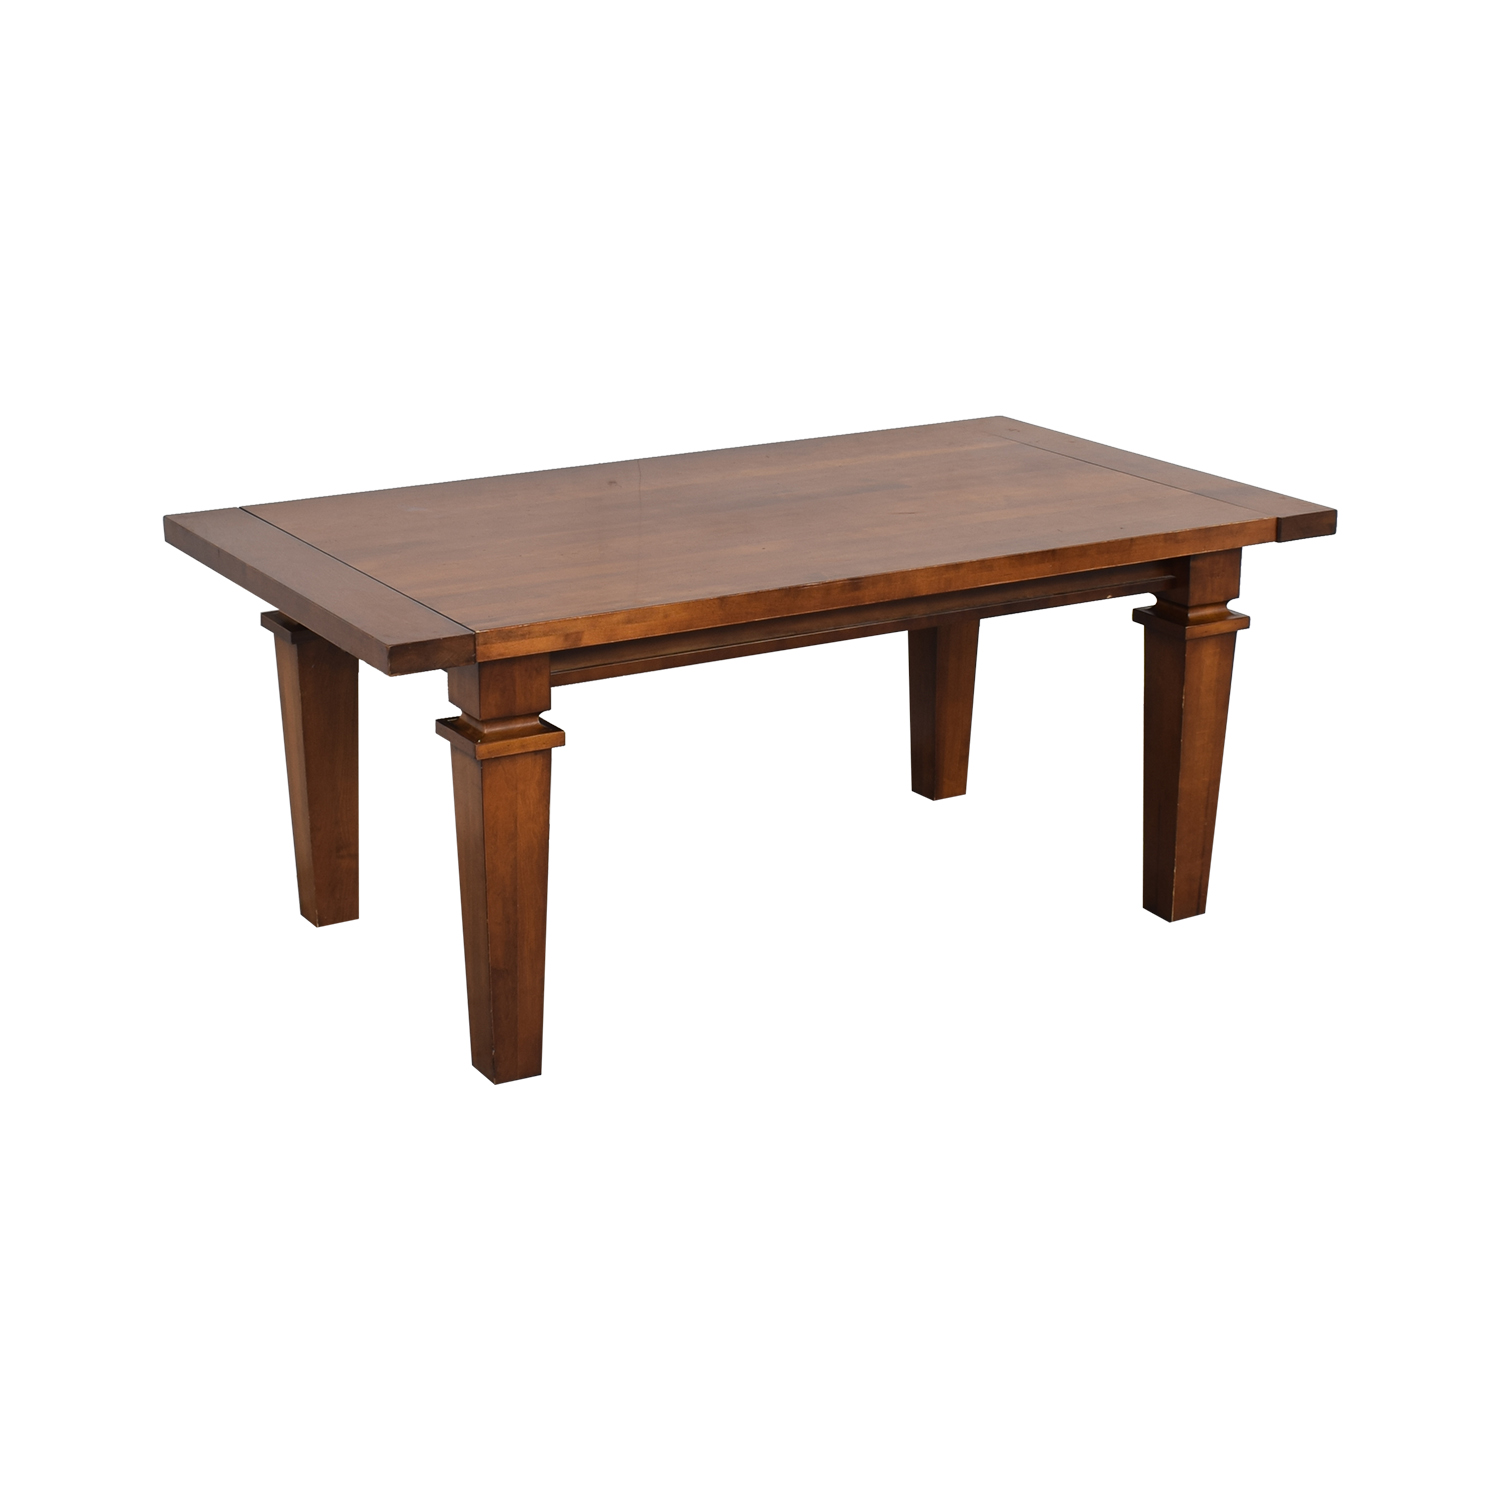 Andes International Andes International Extension Dining Table on sale